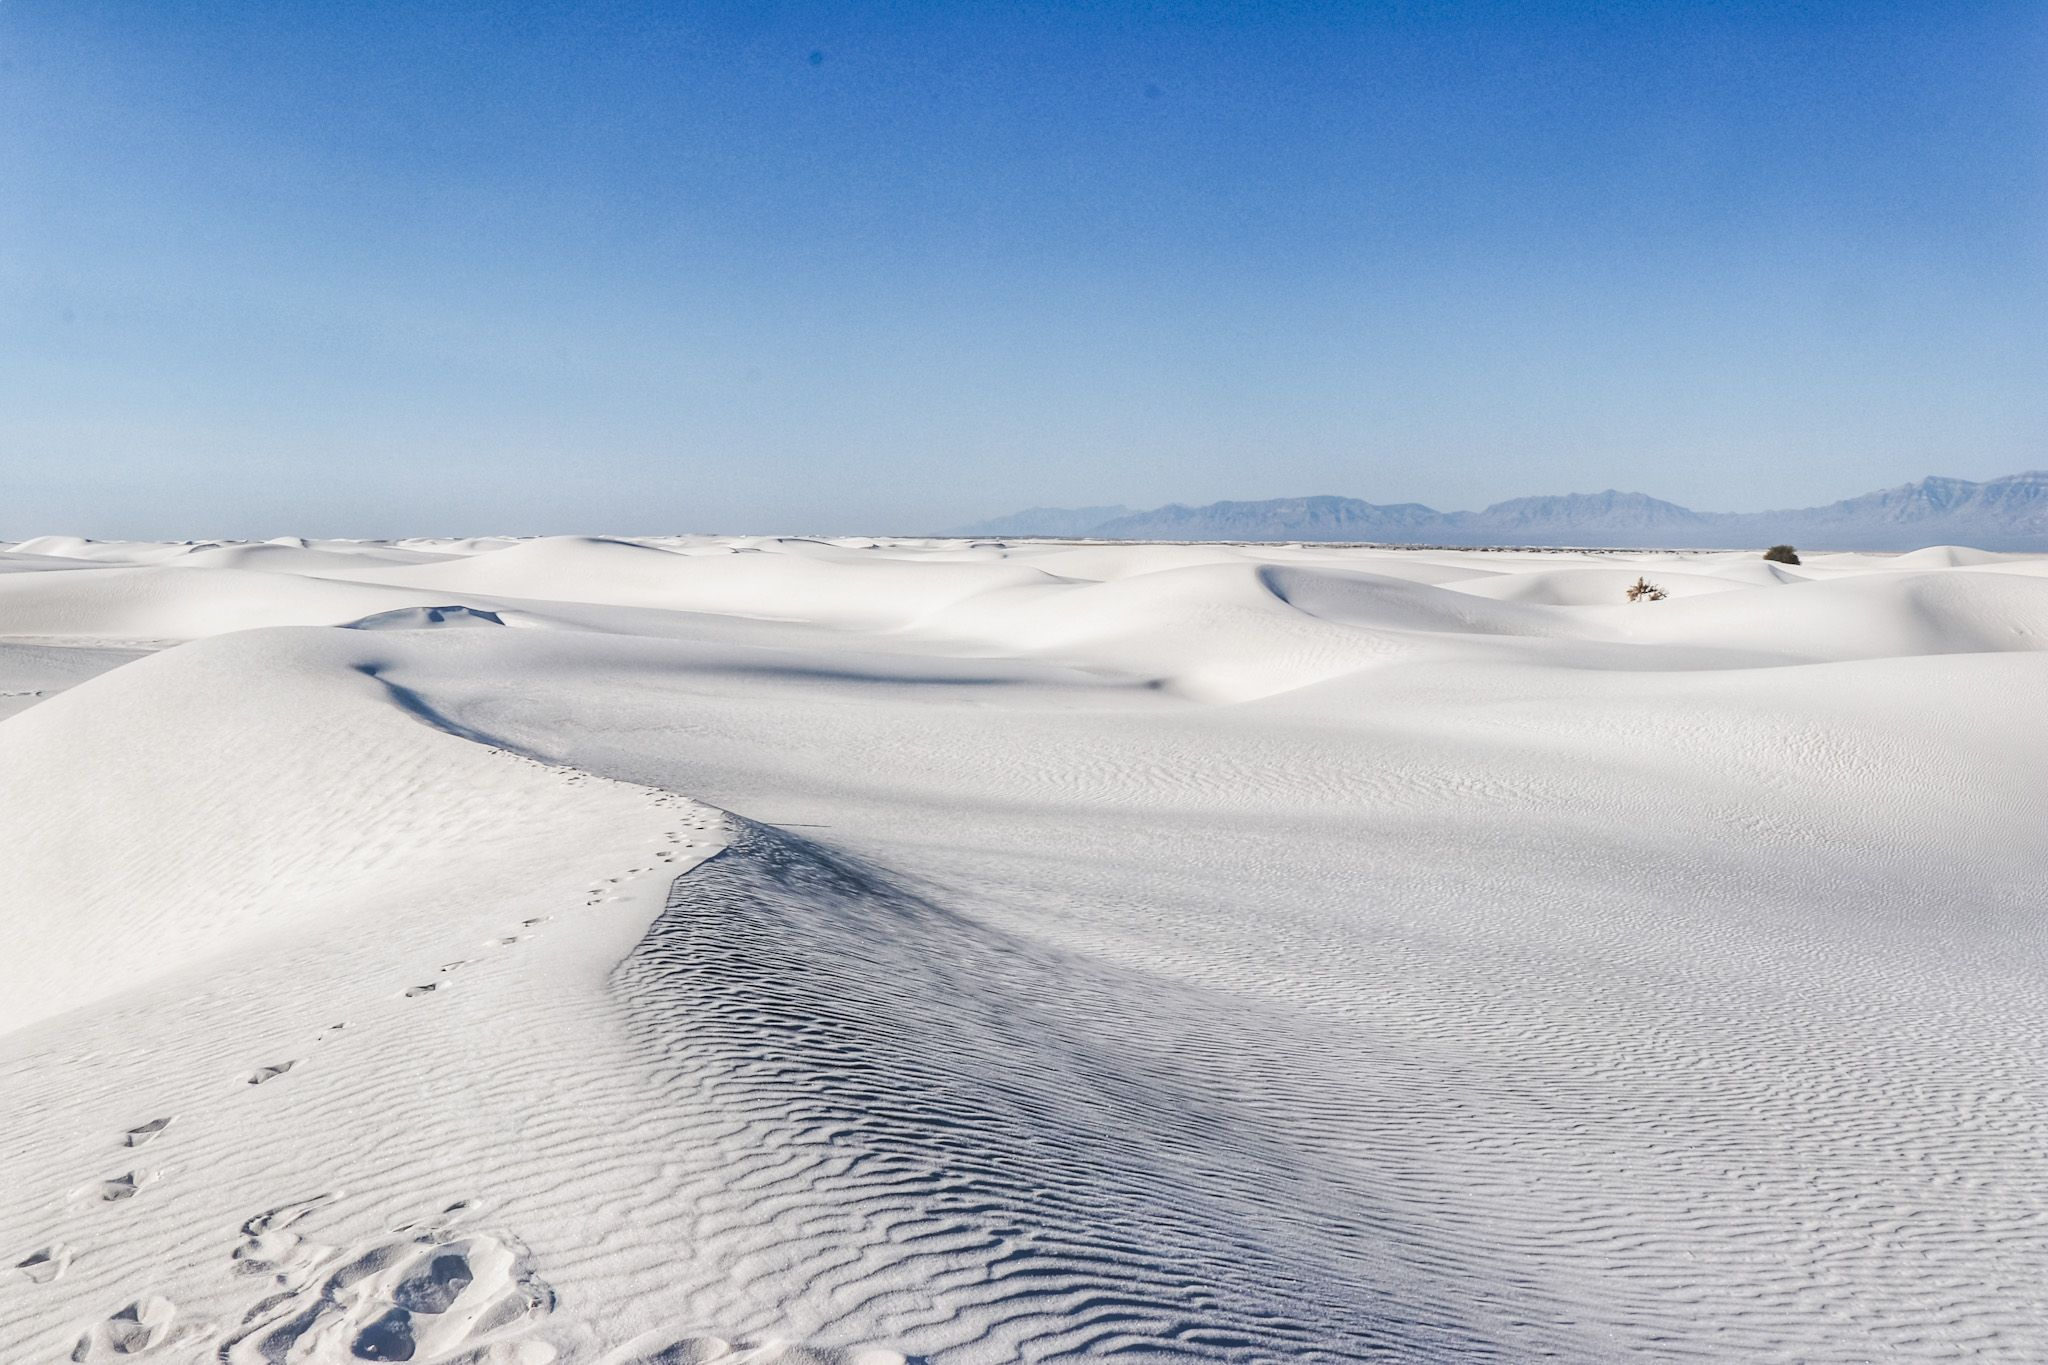 Road Trip to White Sands National Park